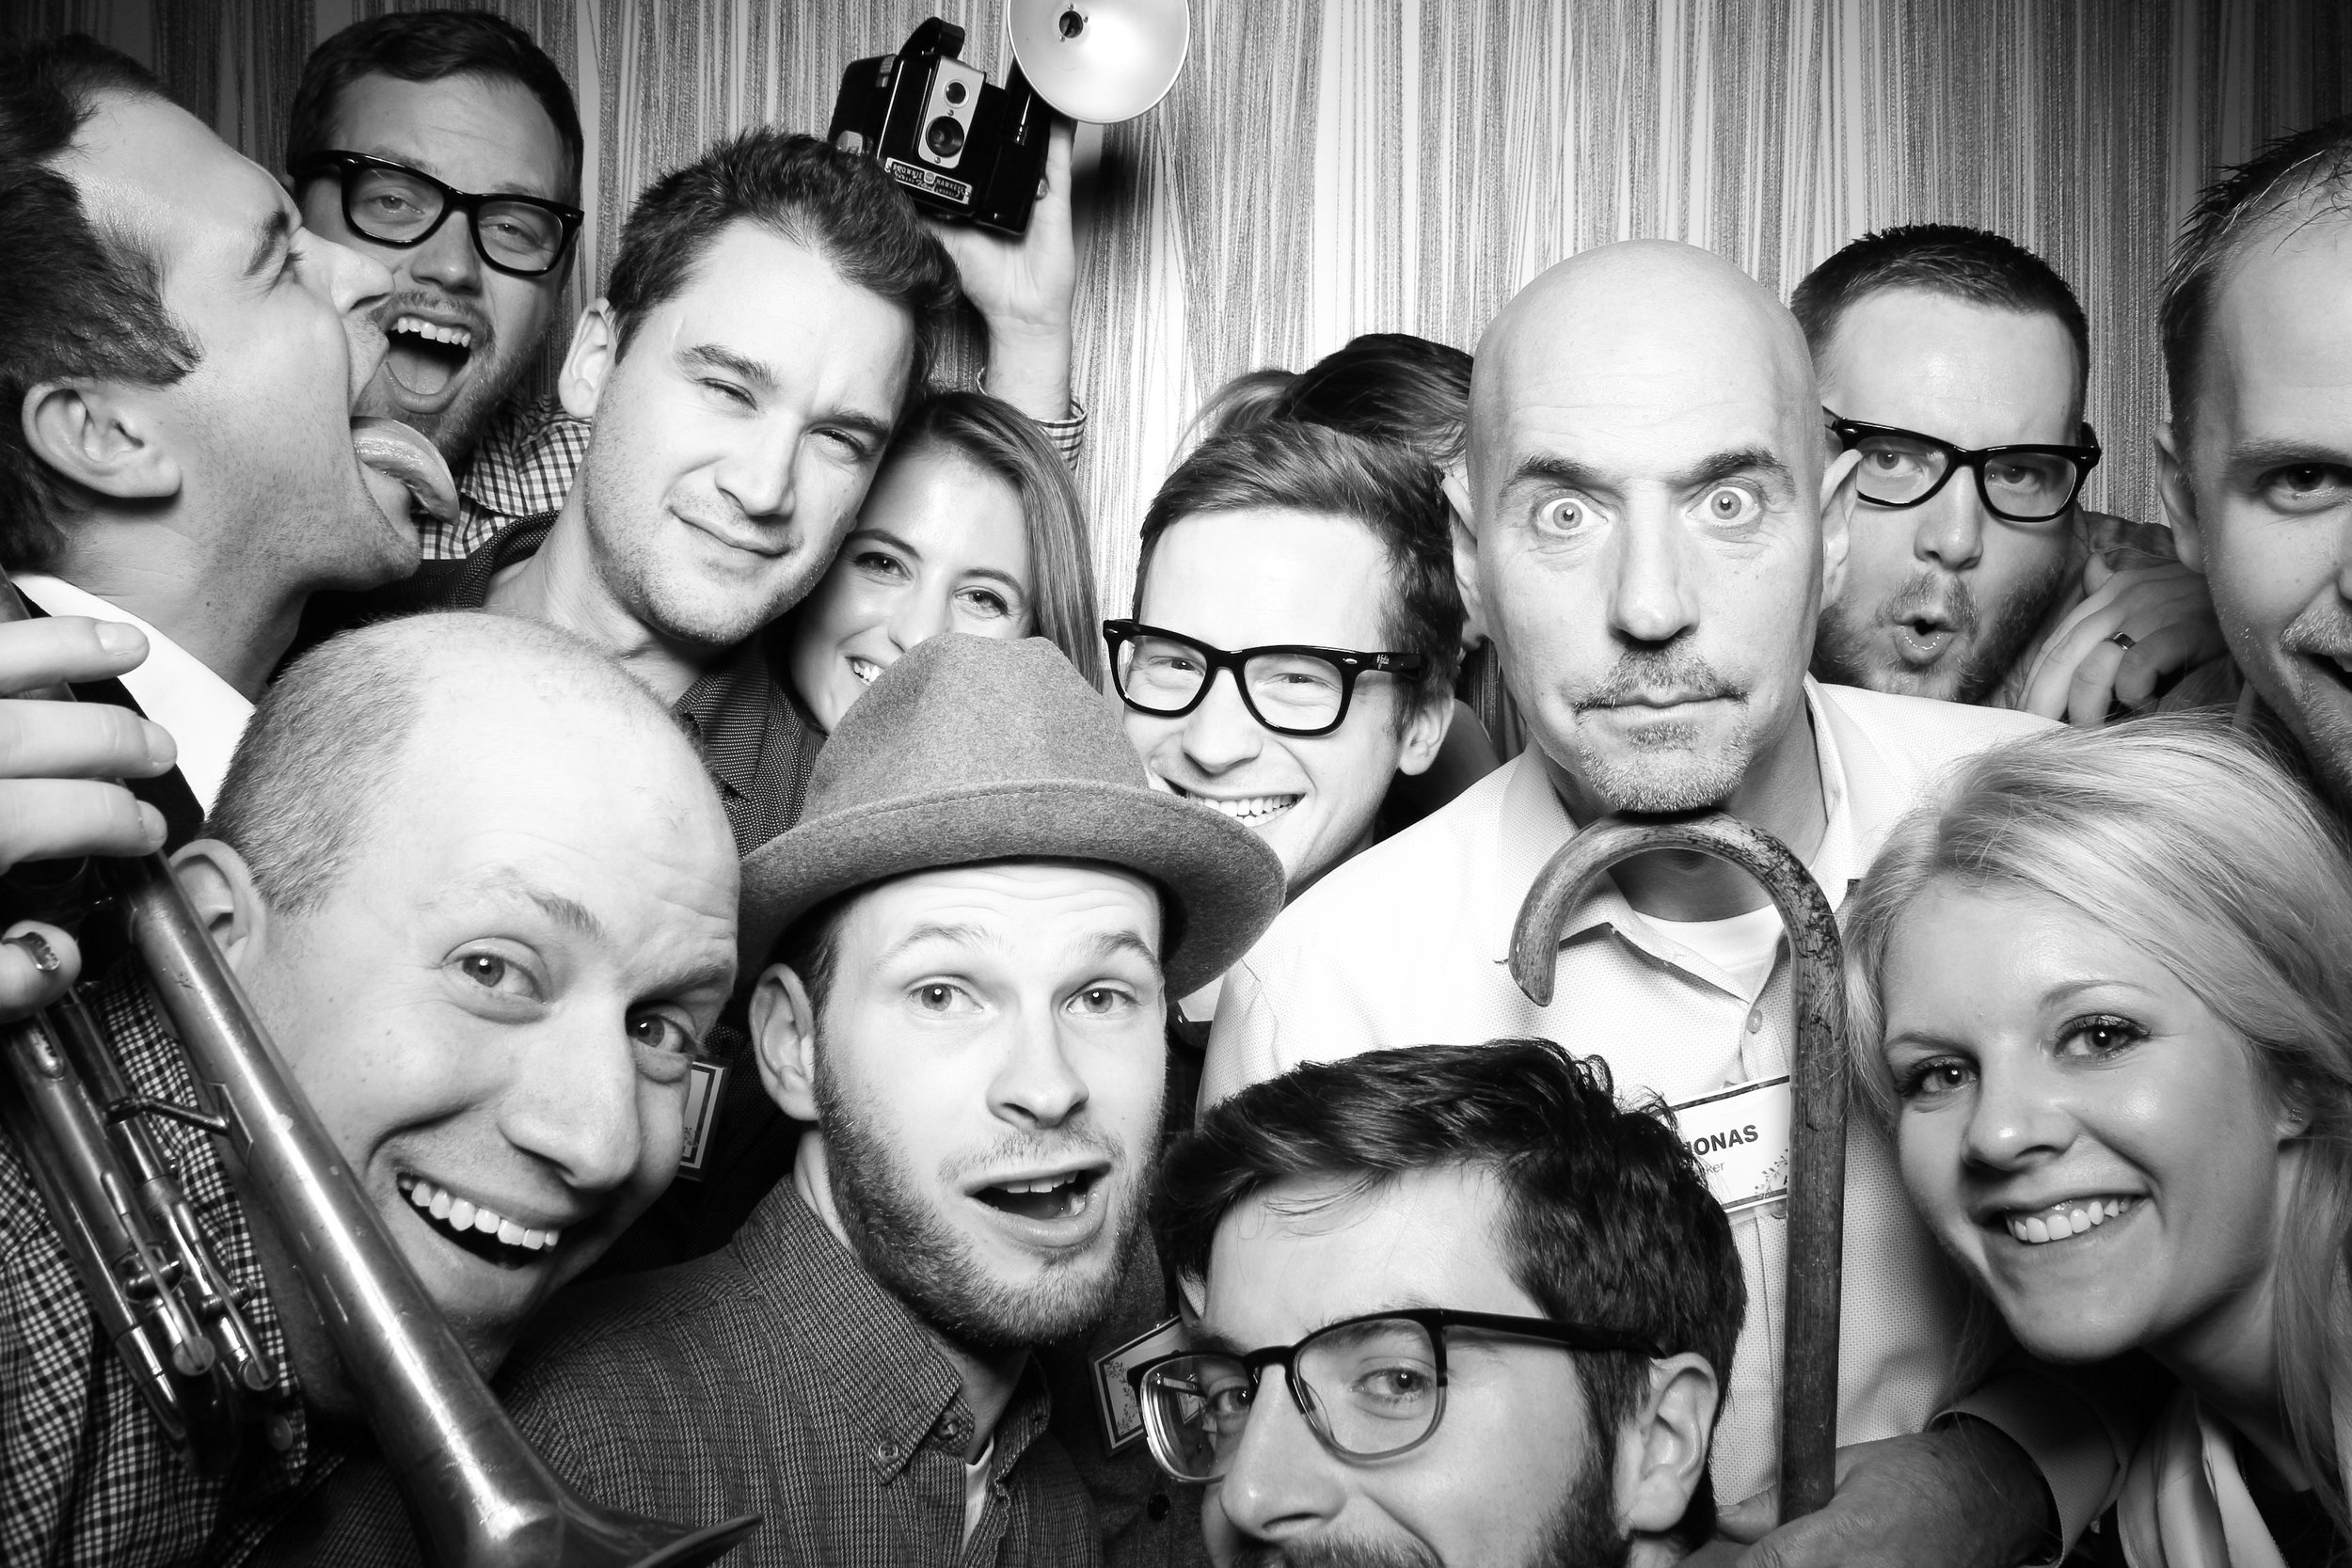 Chicago_Vintage_Photobooth_Holiday_Party_Wit_Hotel_24.jpg